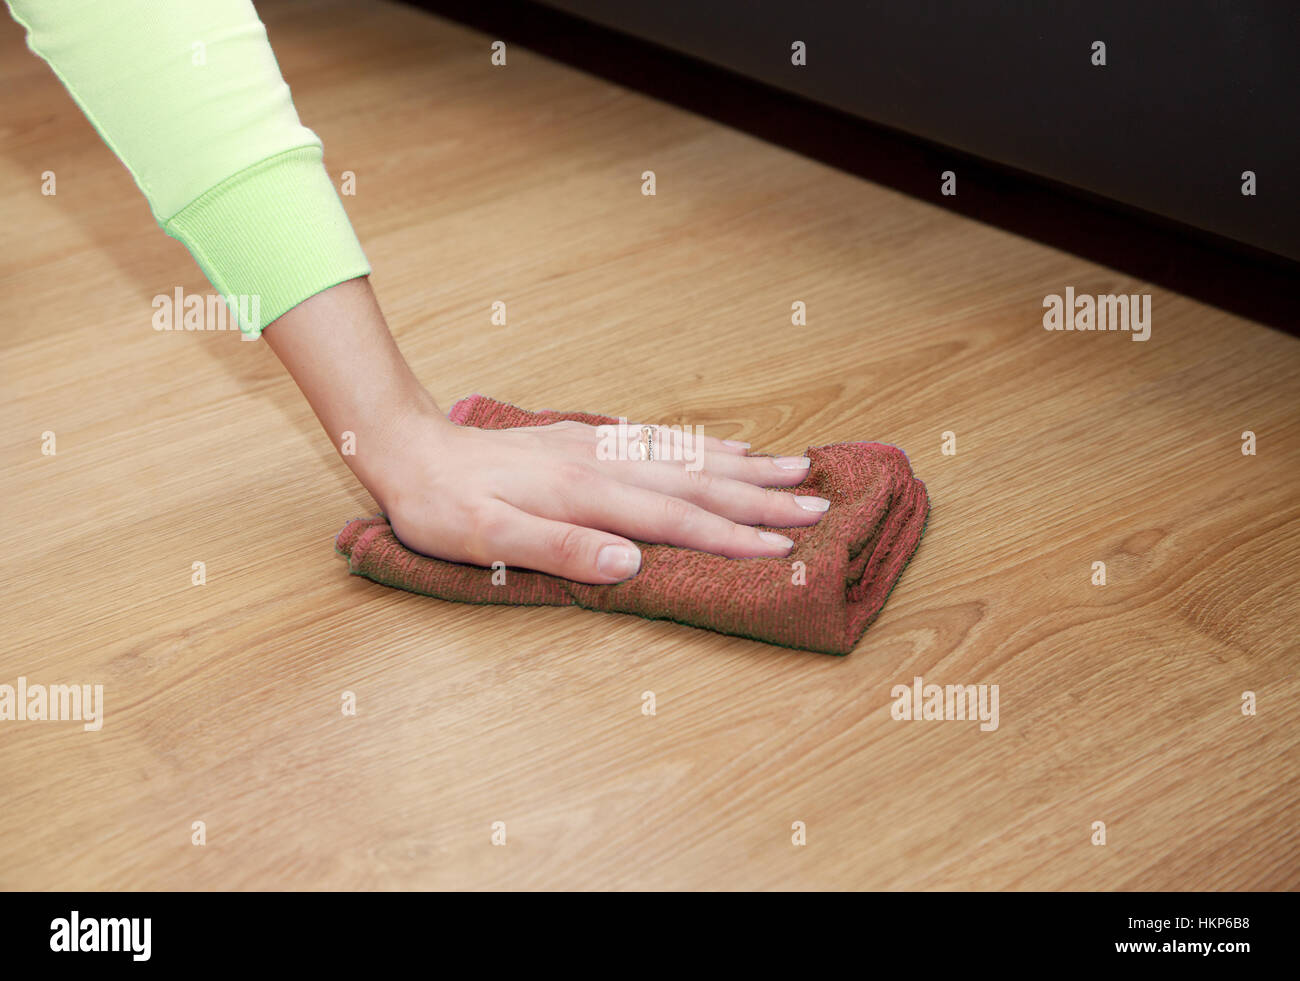 woman's hand cleaning the wooden floor with a brown floorcloth closeup - Stock Image